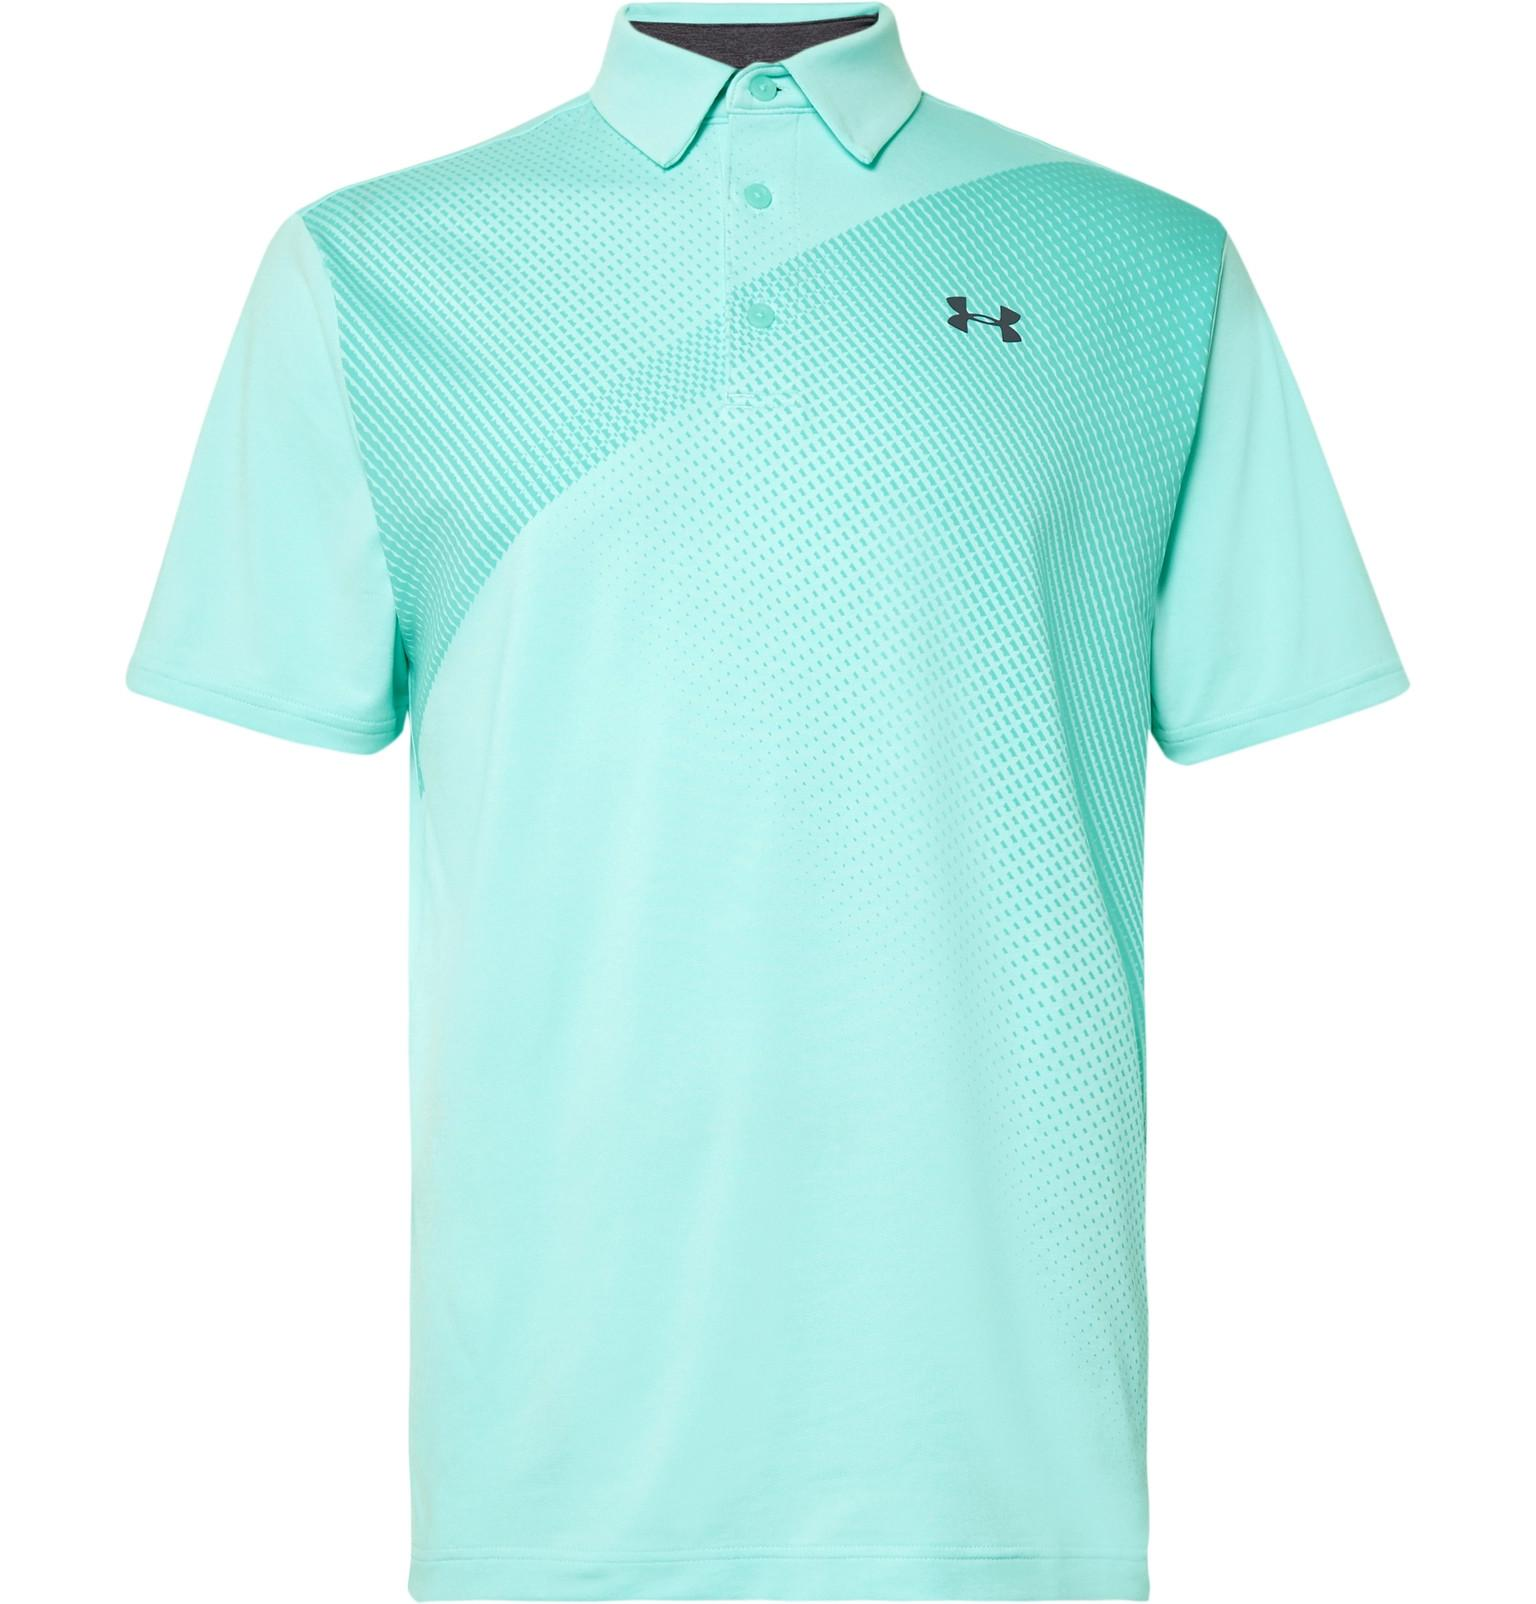 b2f5d7a60a246e Under Armour Playoff 2.0 Heatgear Golf Polo Shirt in Blue for Men - Lyst